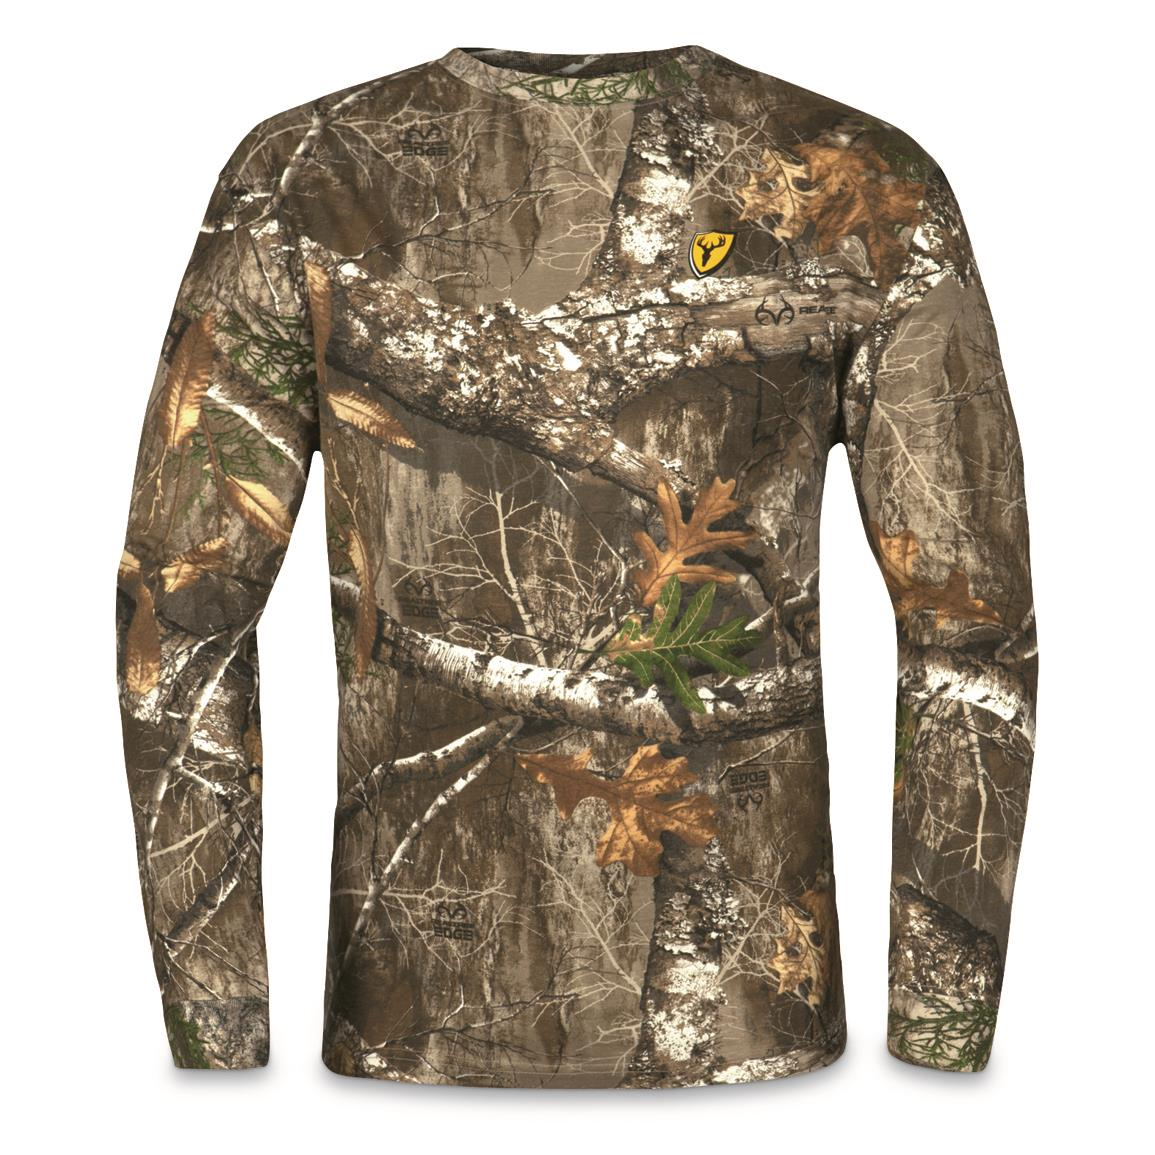 ScentBlocker Men's Long-Sleeve T-Shirt, Realtree EDGE™